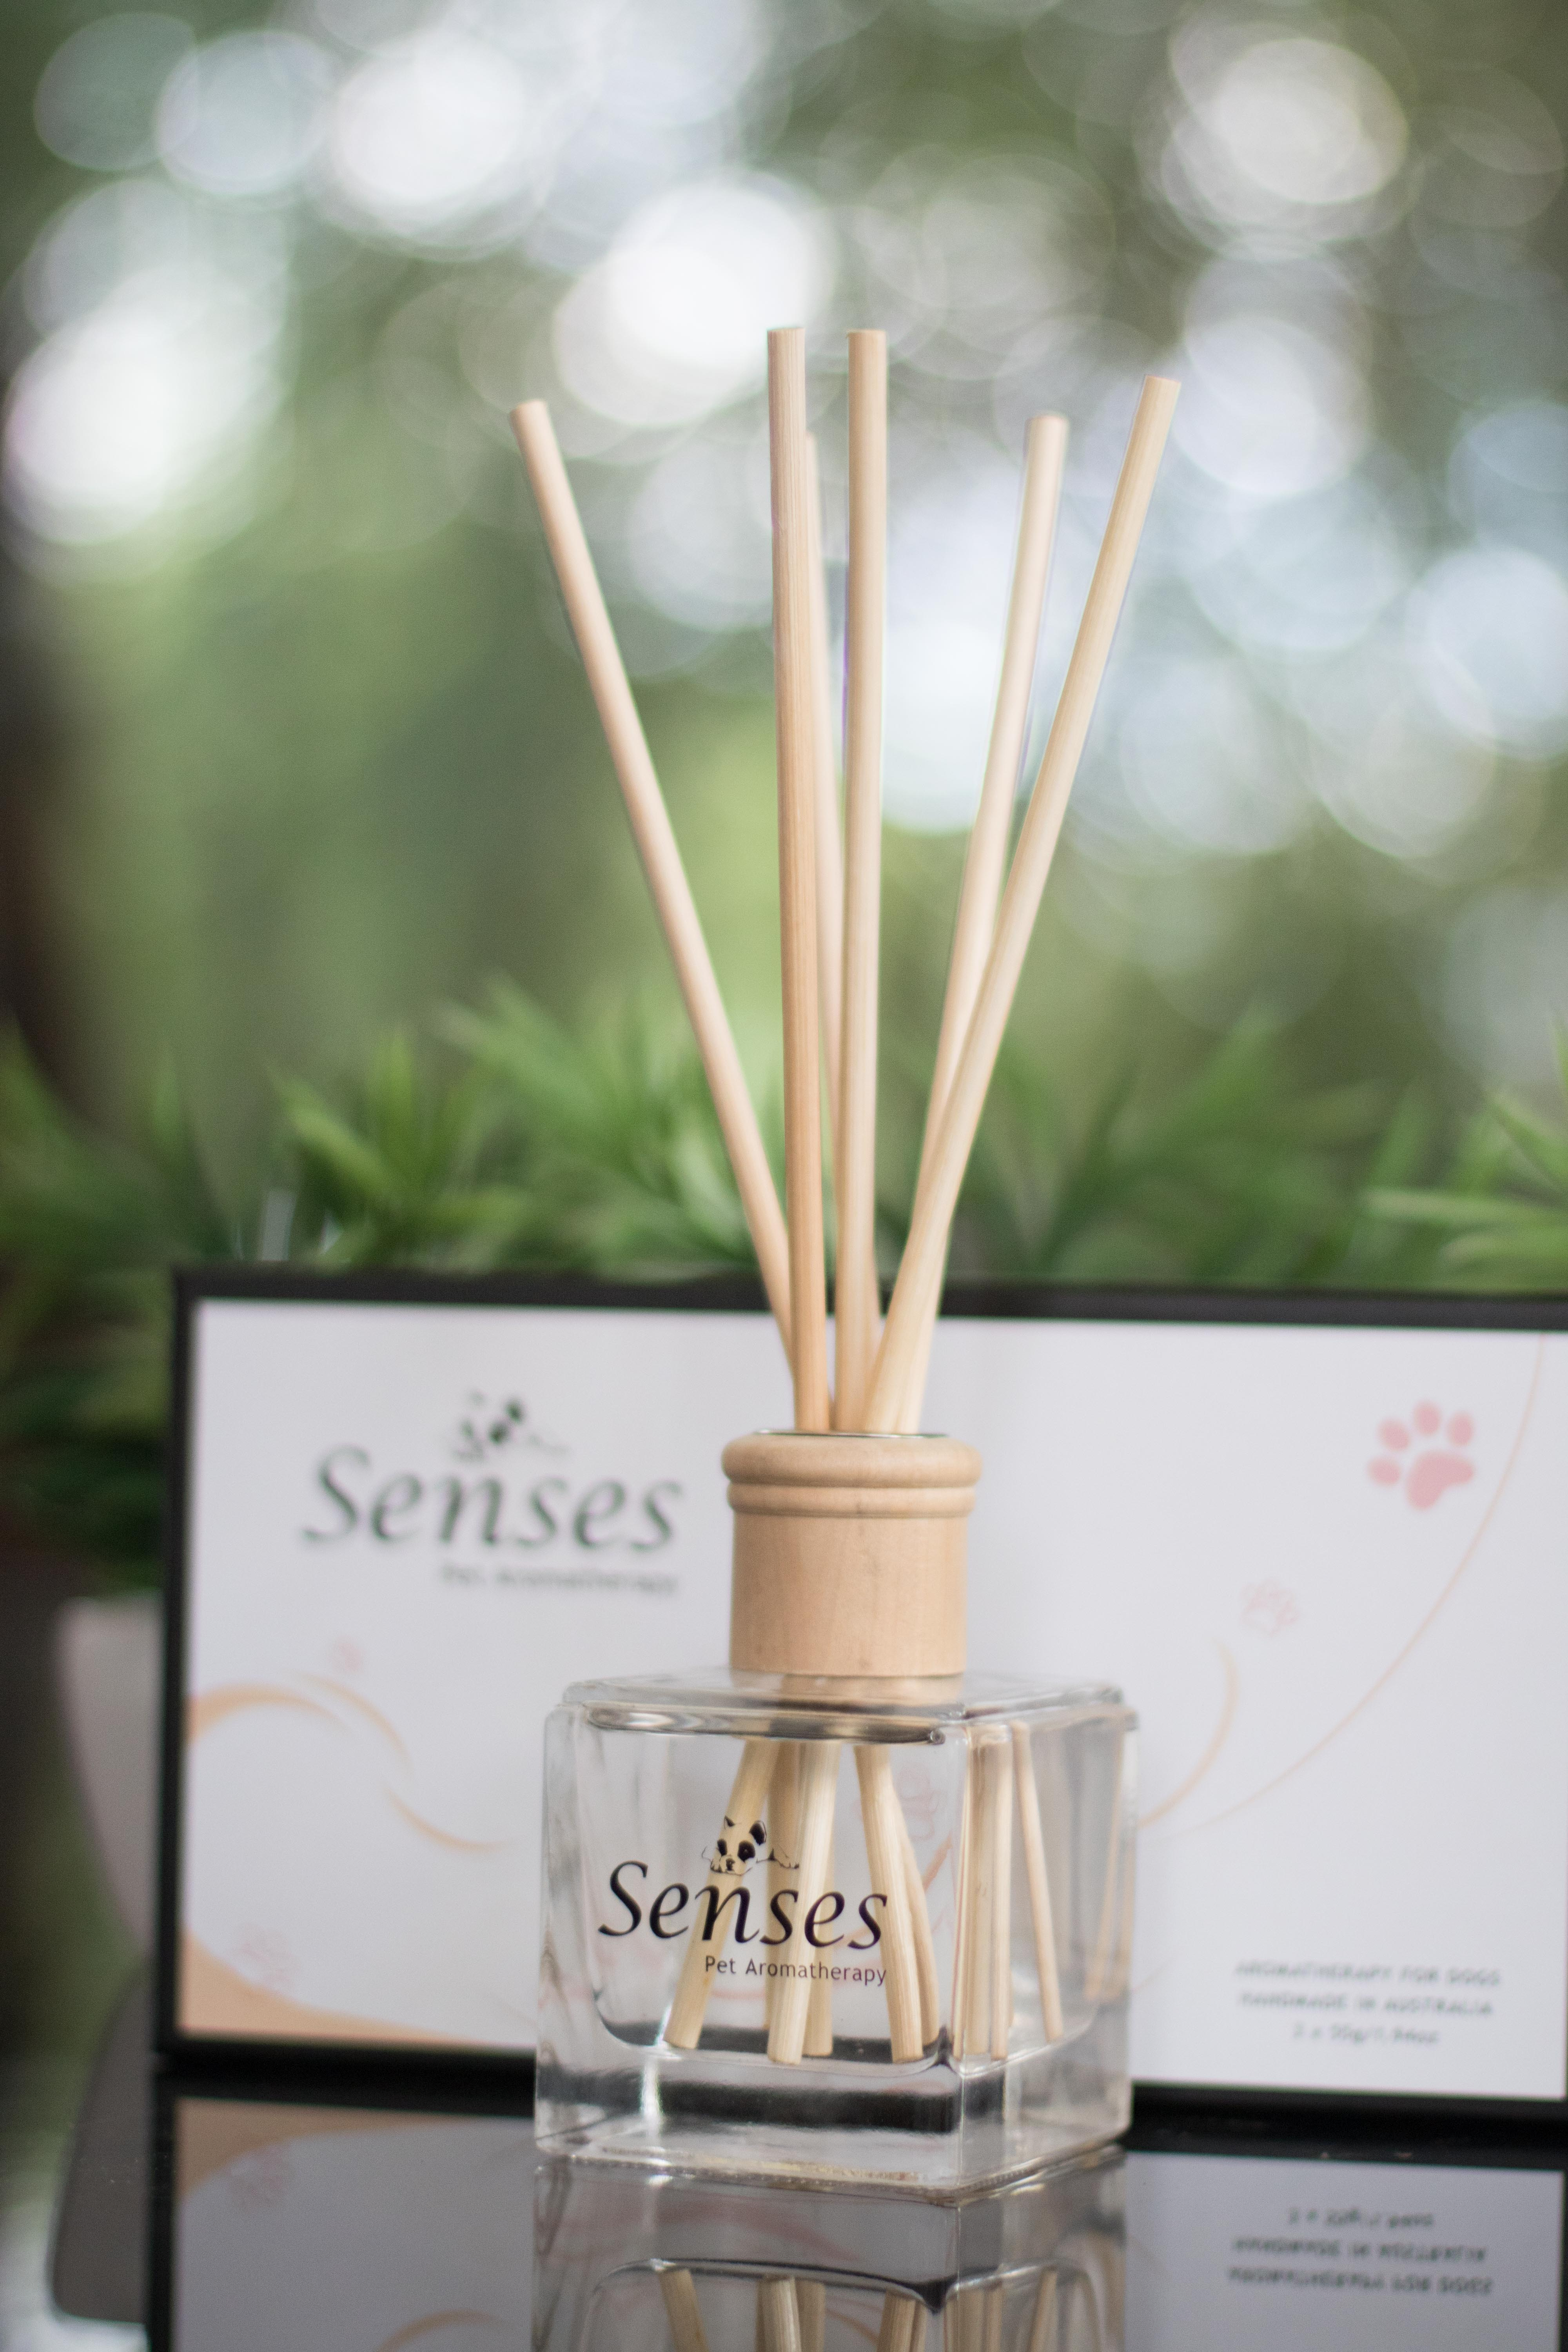 Senses Pet Aromatherapy Reed Diffuser Gemma And Ollie